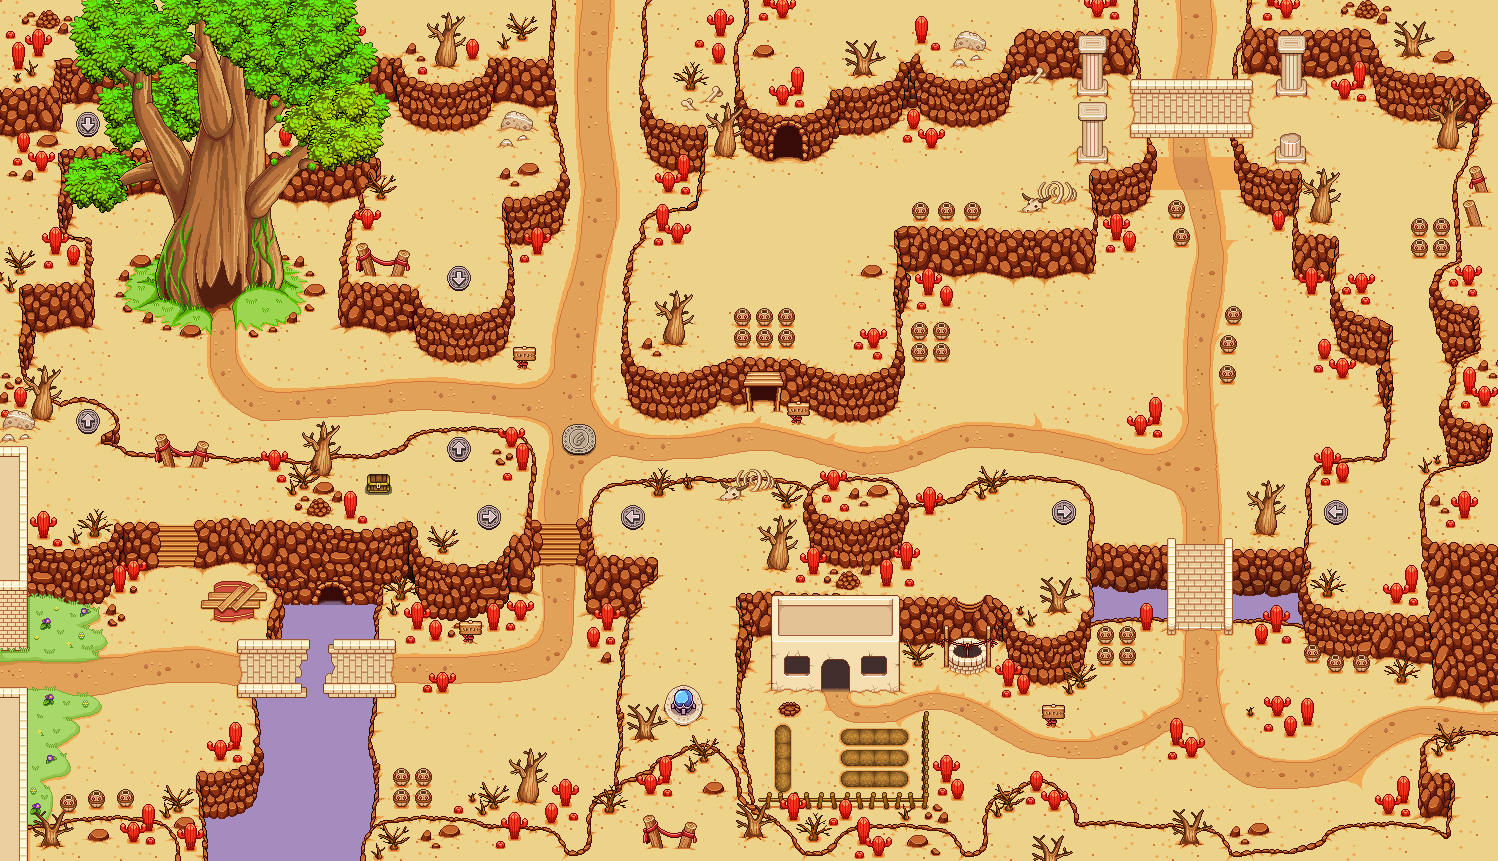 Desert map 02 by vilyaroo on deviantart desert map 02 by vilyaroo desert map 02 by vilyaroo gumiabroncs Gallery